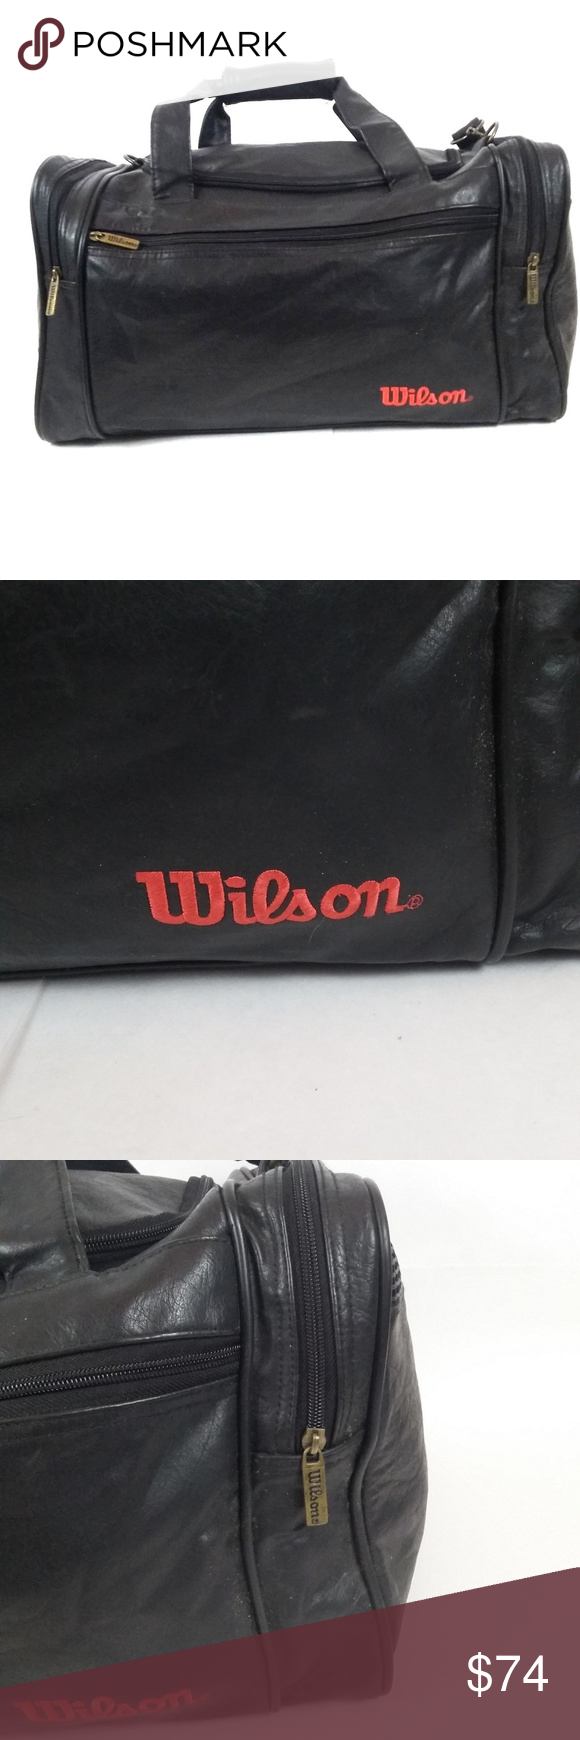 Vintage Wilson Black Leather Duffel Gym Bag Leather